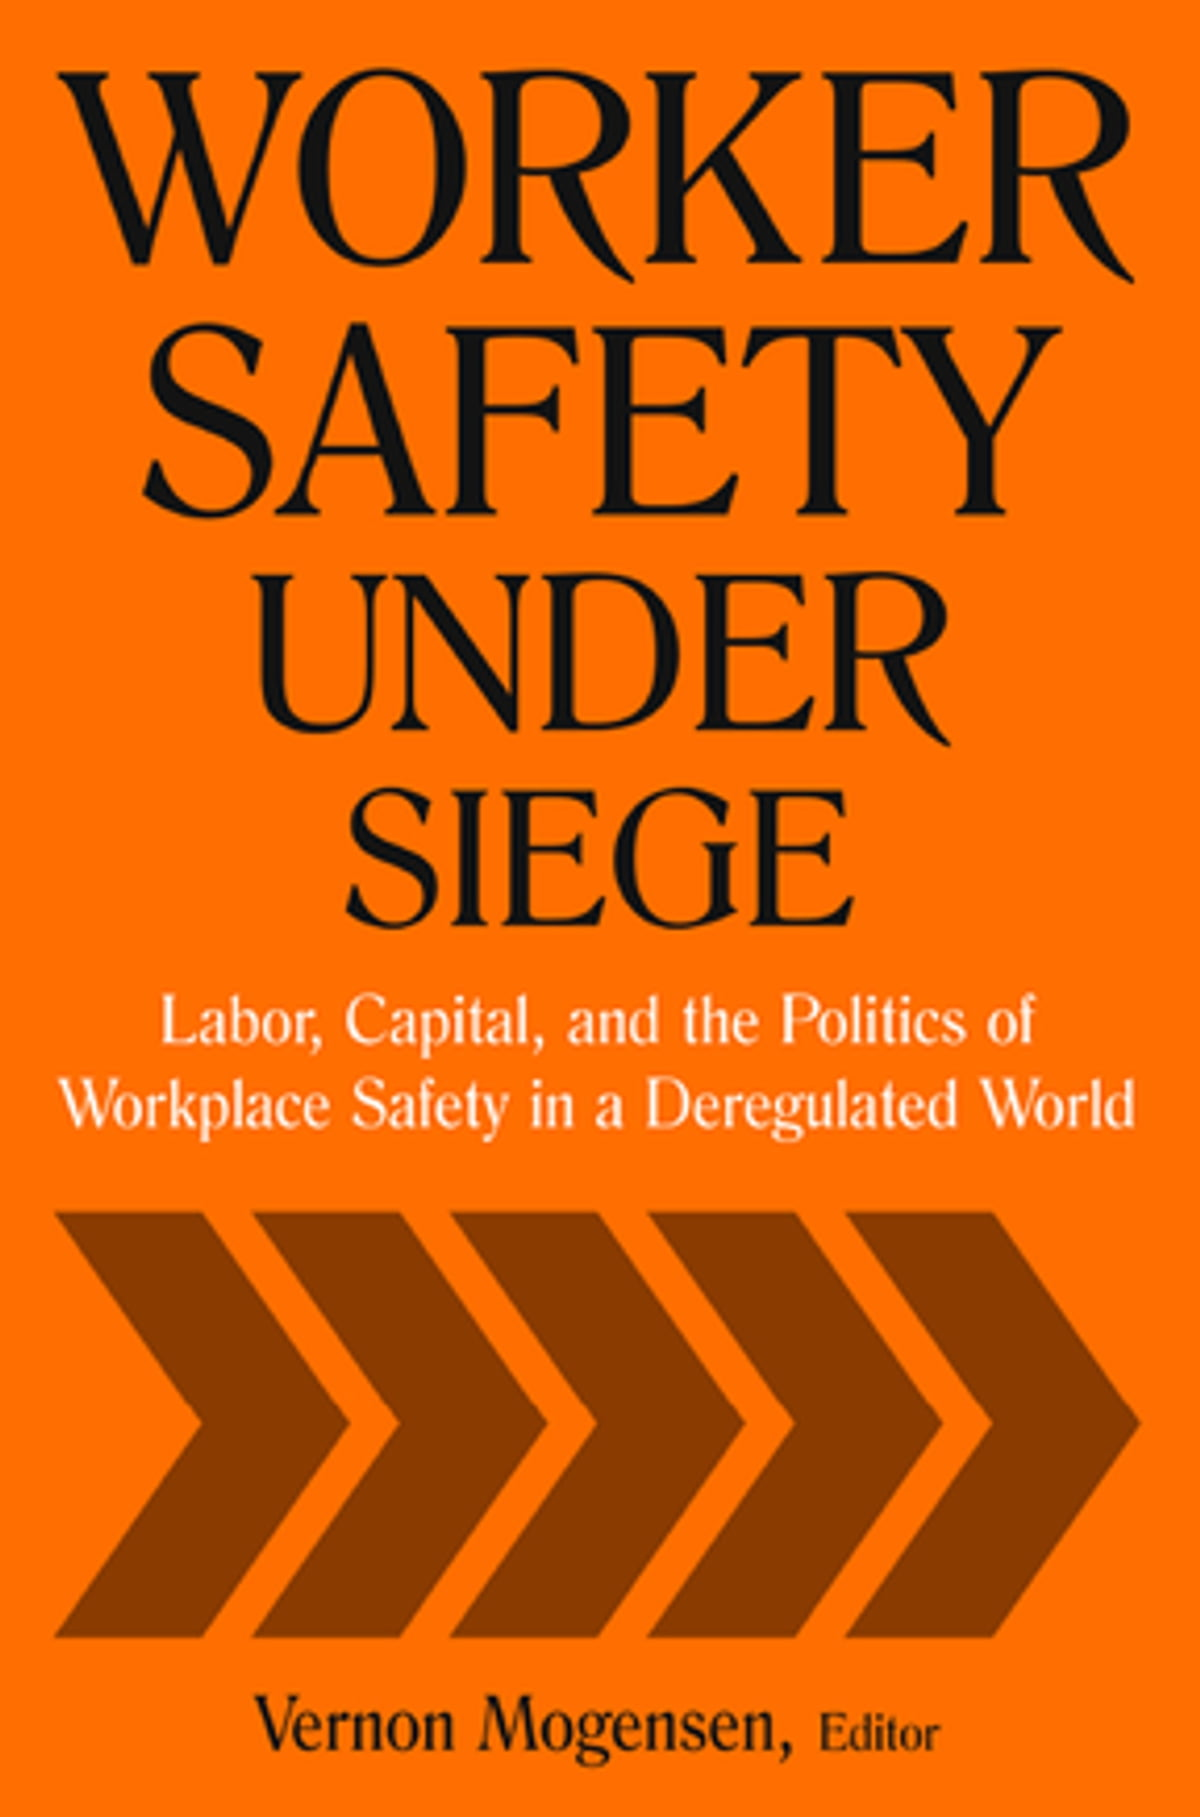 Labor Safety Worker Safety Under Siege Labor Capital And The Politics Of Workplace Safety In A Deregulated World Ebook By Vernon Mogensen Rakuten Kobo